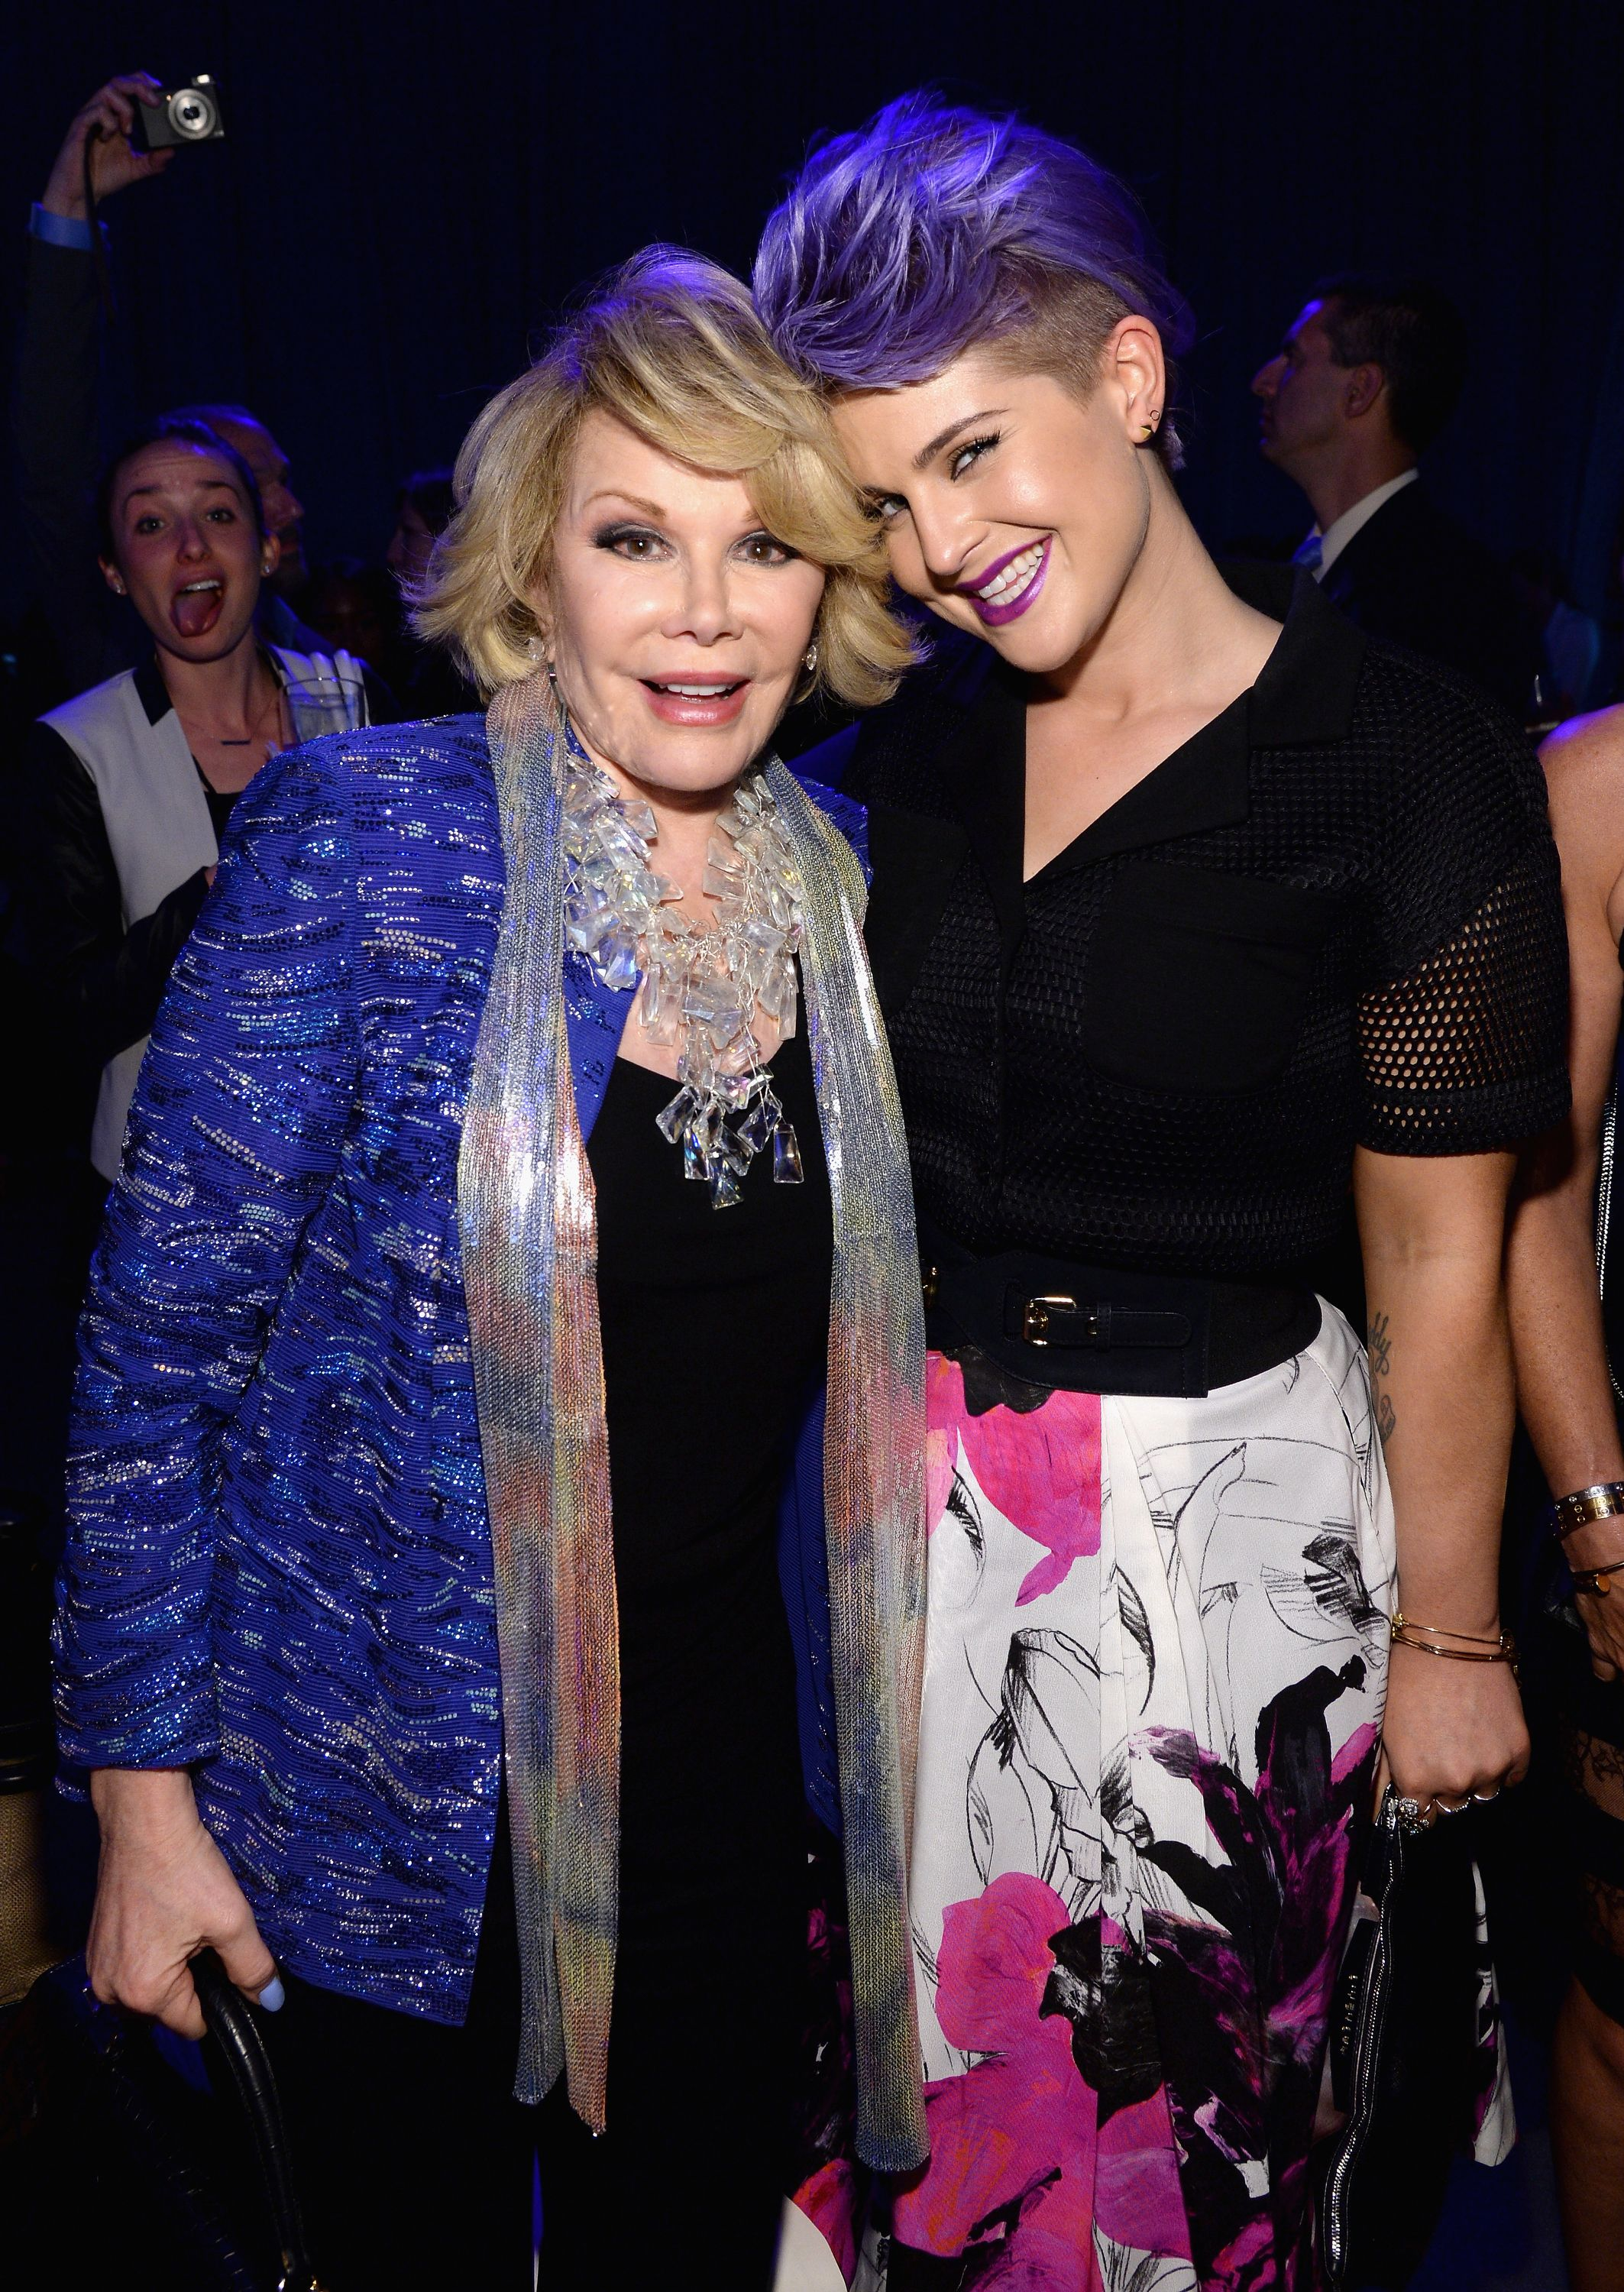 """Joan Rivers andKelly Osbourne from the """"Fashion Police""""in New York City on May 15, 2014 